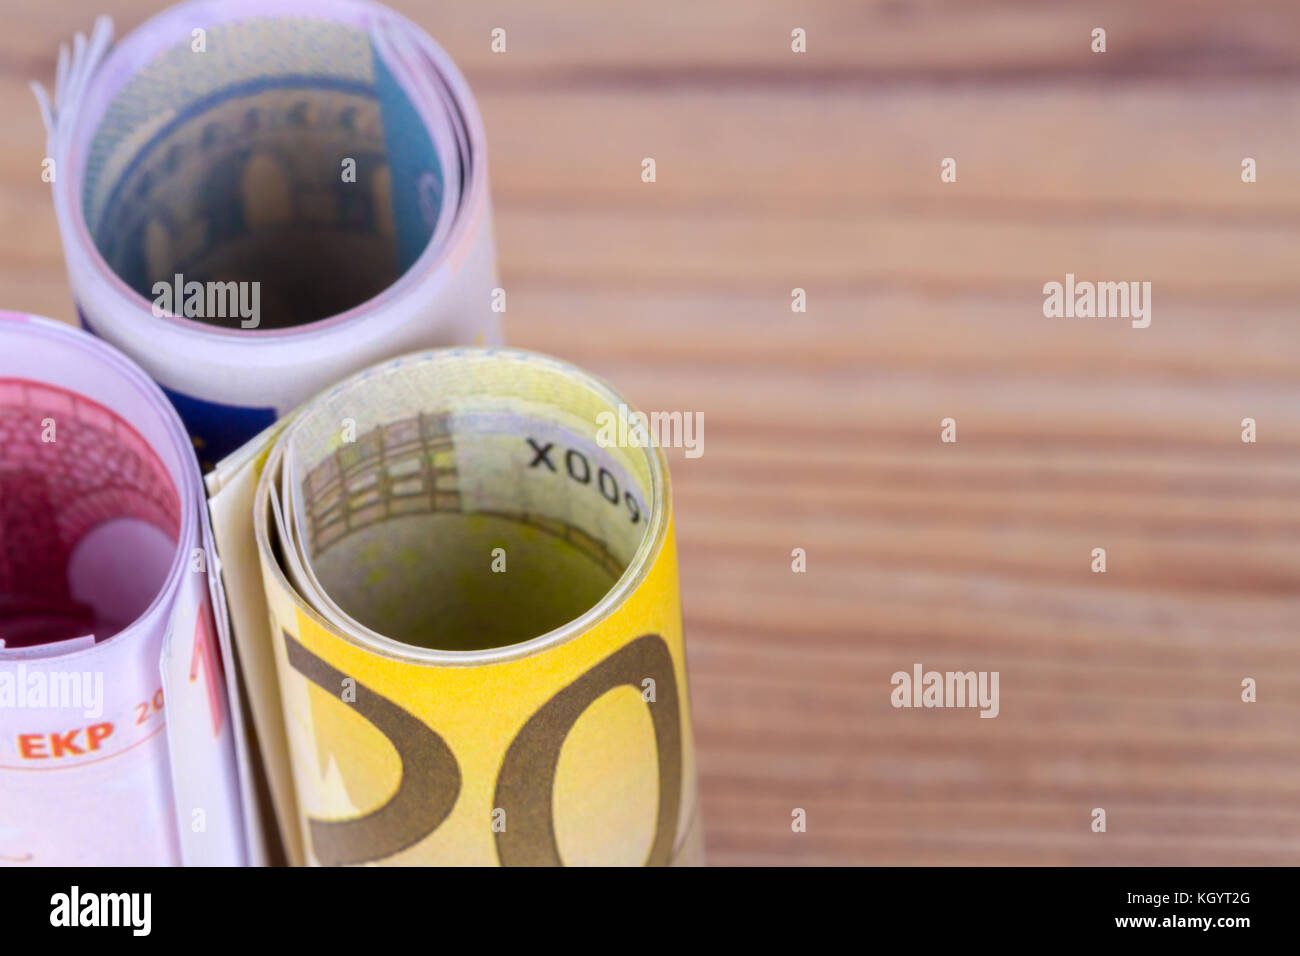 Close up view of bankroll cash euro banknotes in finance concept on wooden background. - Stock Image